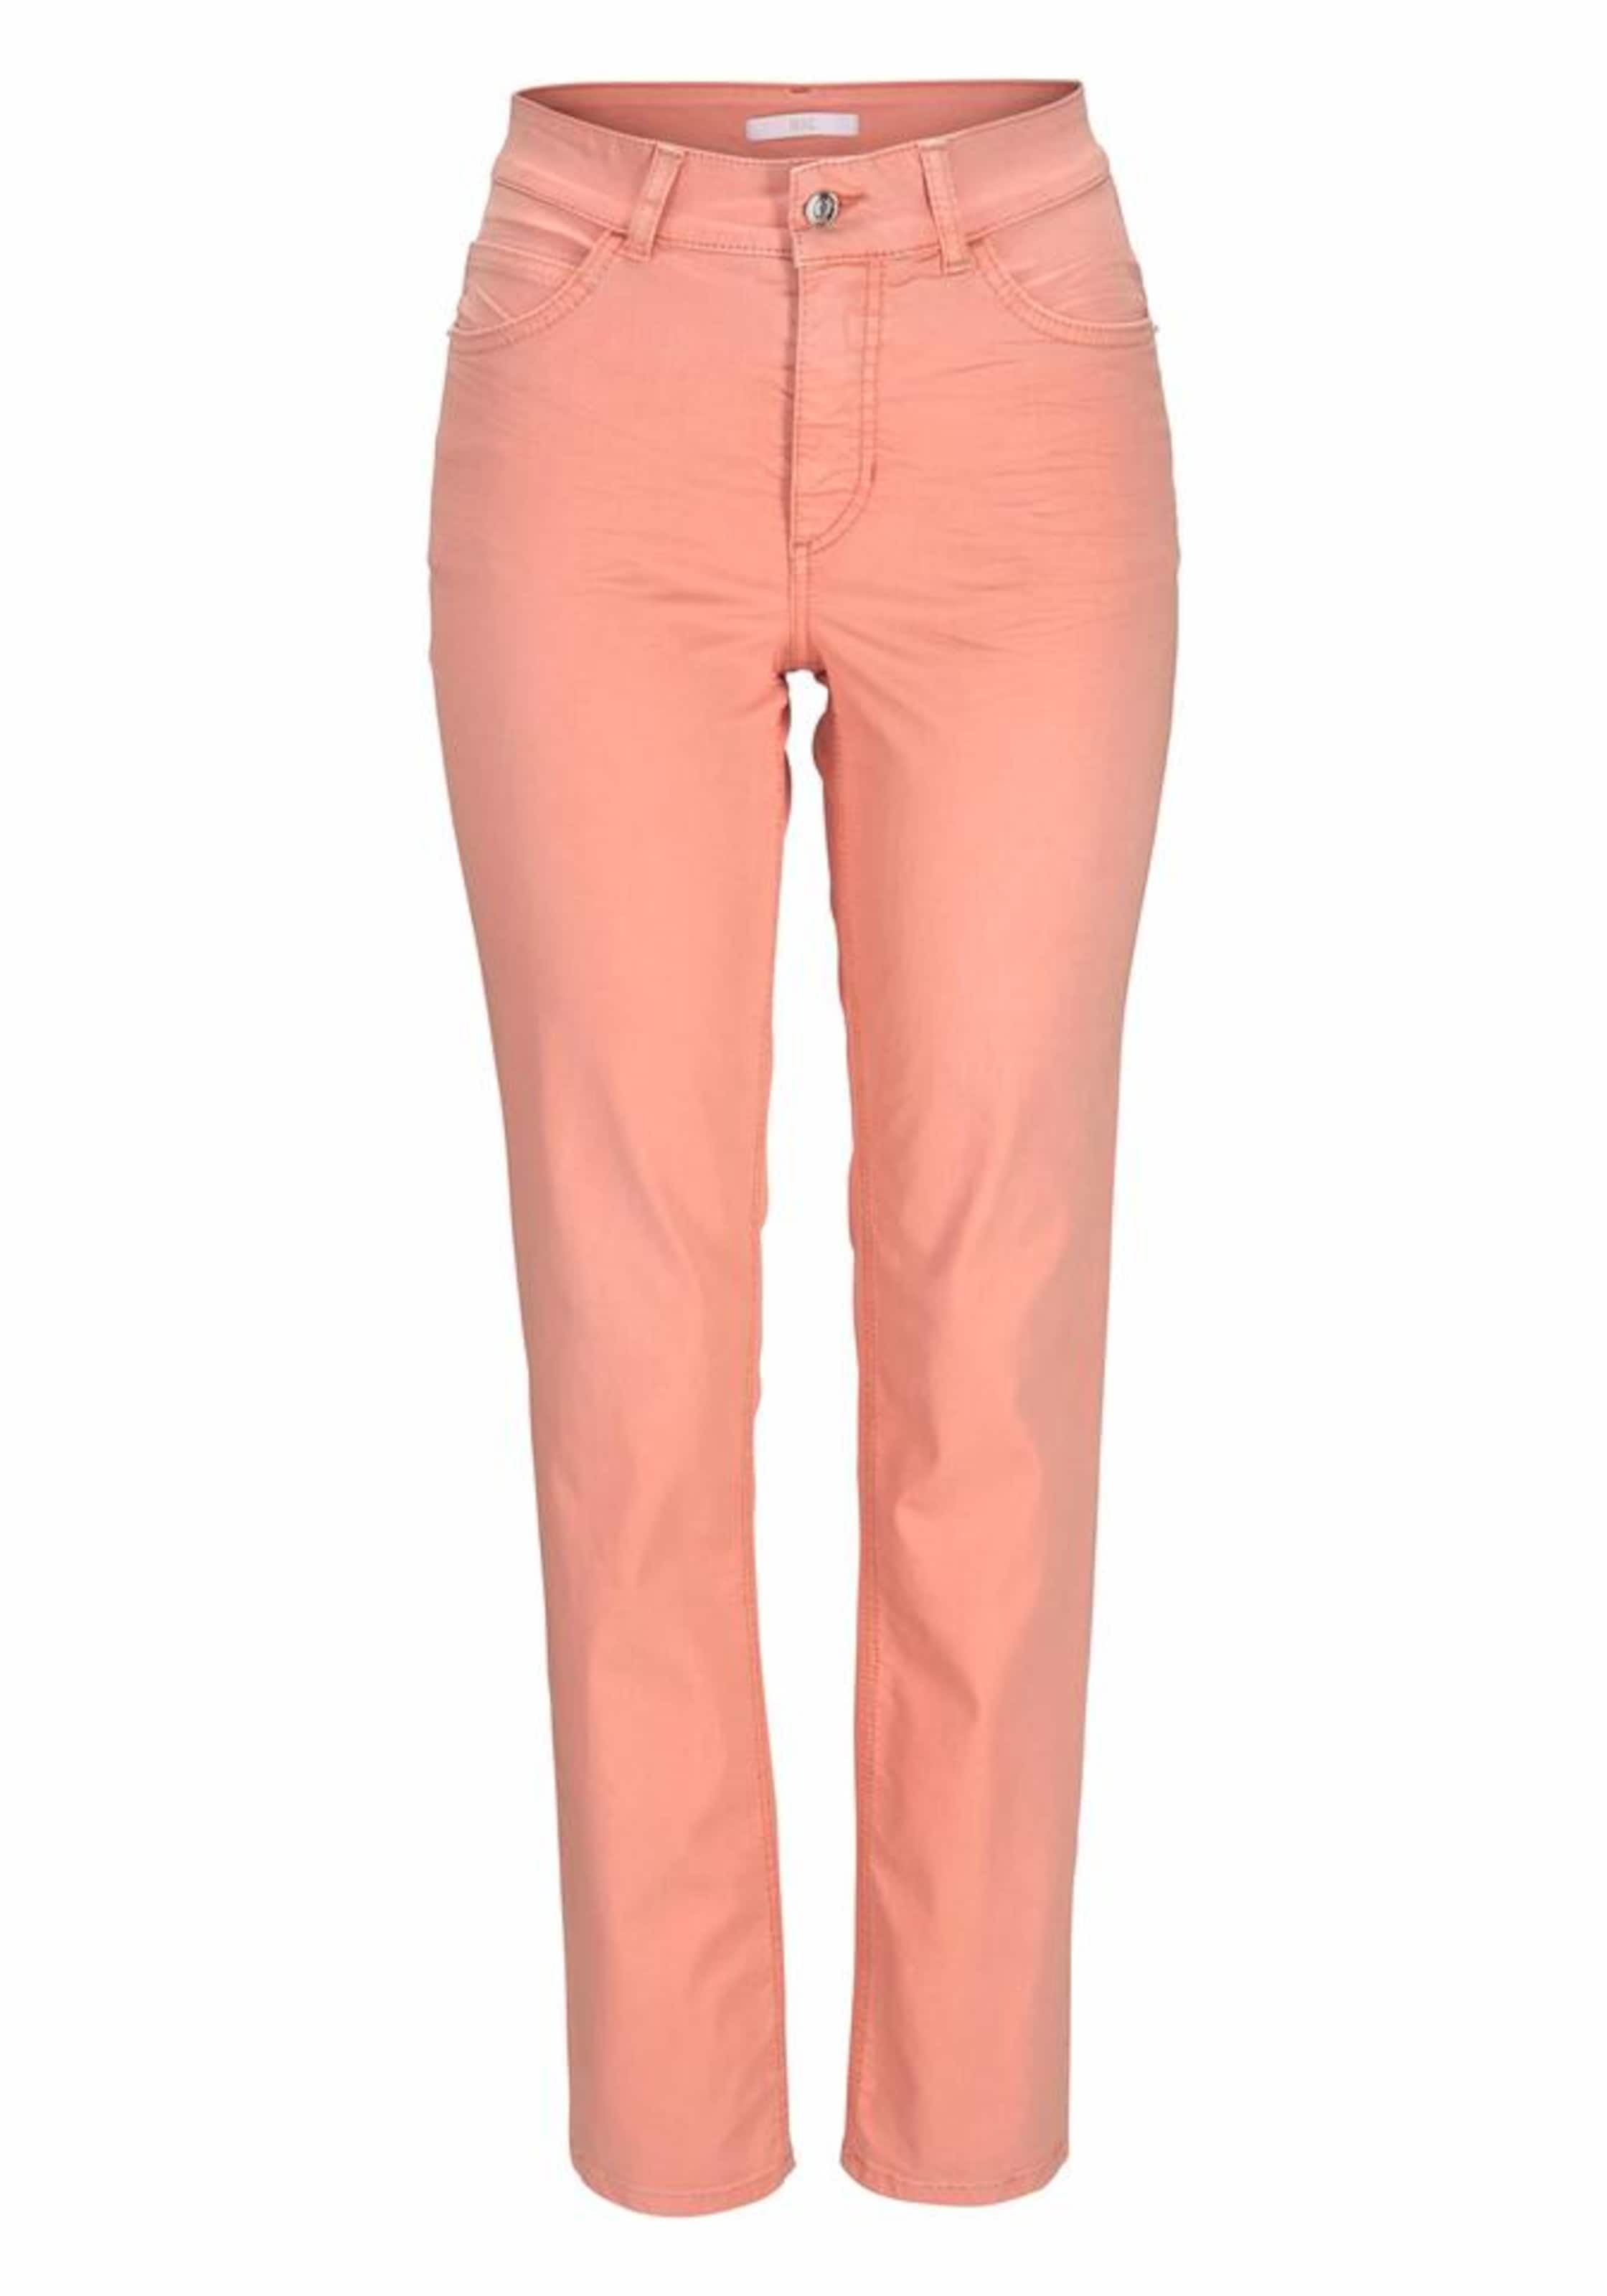 Mac In 'melanie' Apricot Stretch jeans uOikXTZP